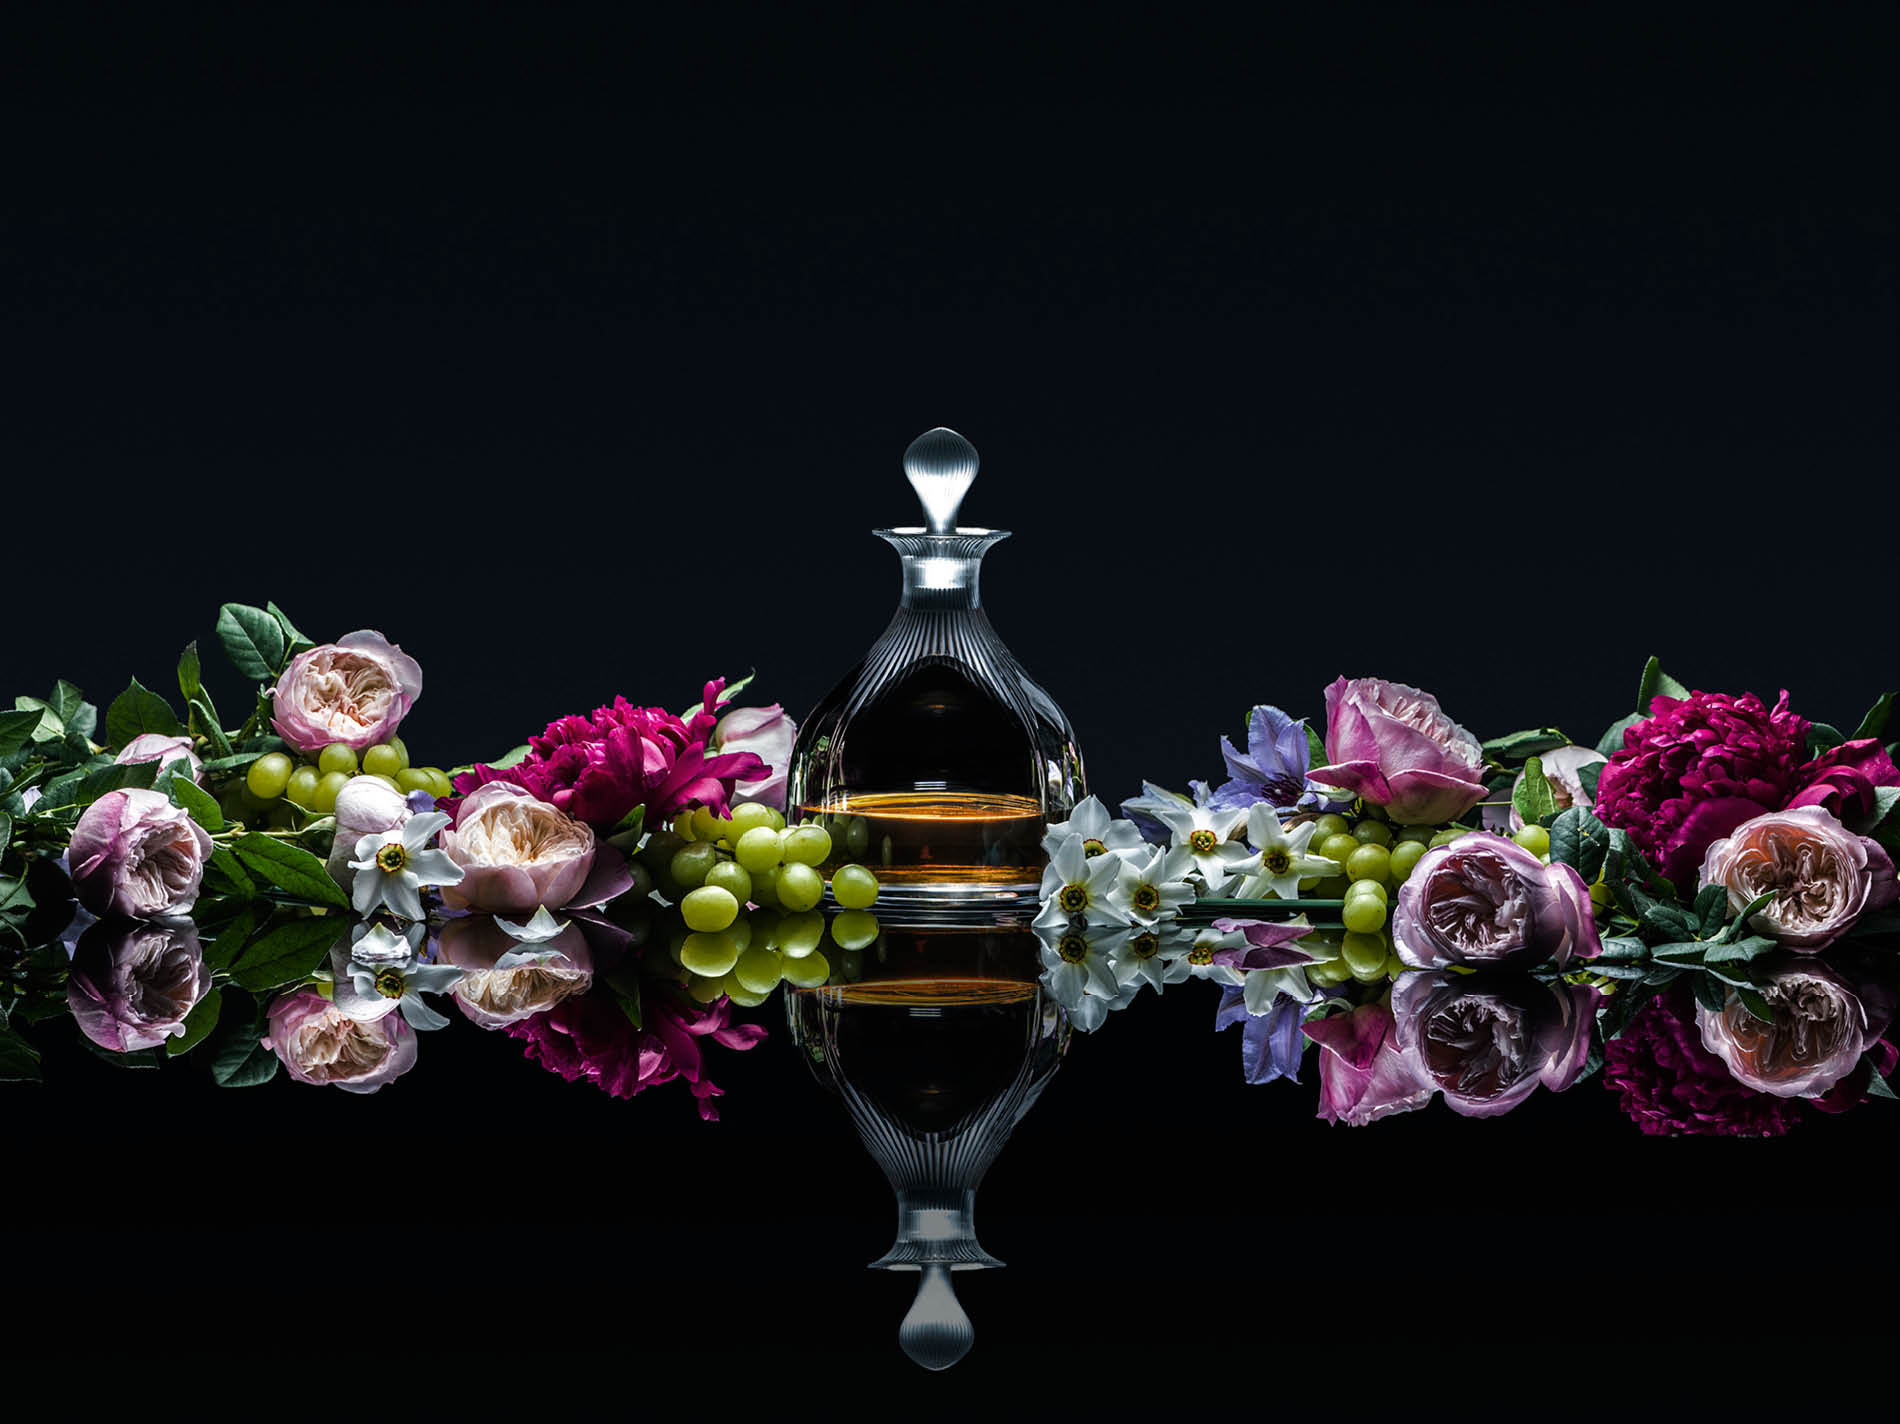 Lalique's crystal decanter still life photograph by DTE